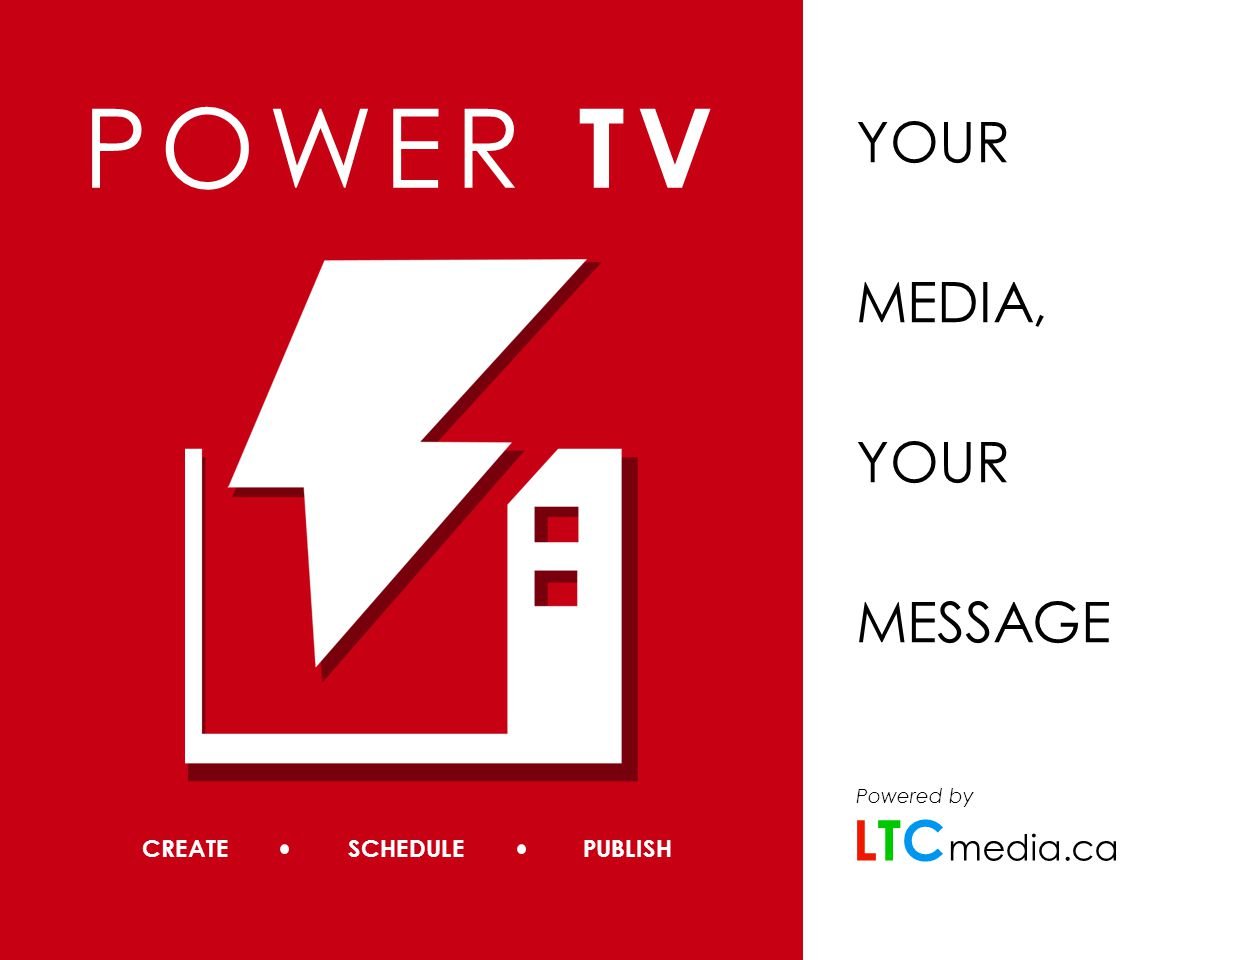 CREATE SCHEDULE PUBLISH POWER TV YOUR MEDIA, YOUR MESSAGE media.ca Powered by LTCLTC